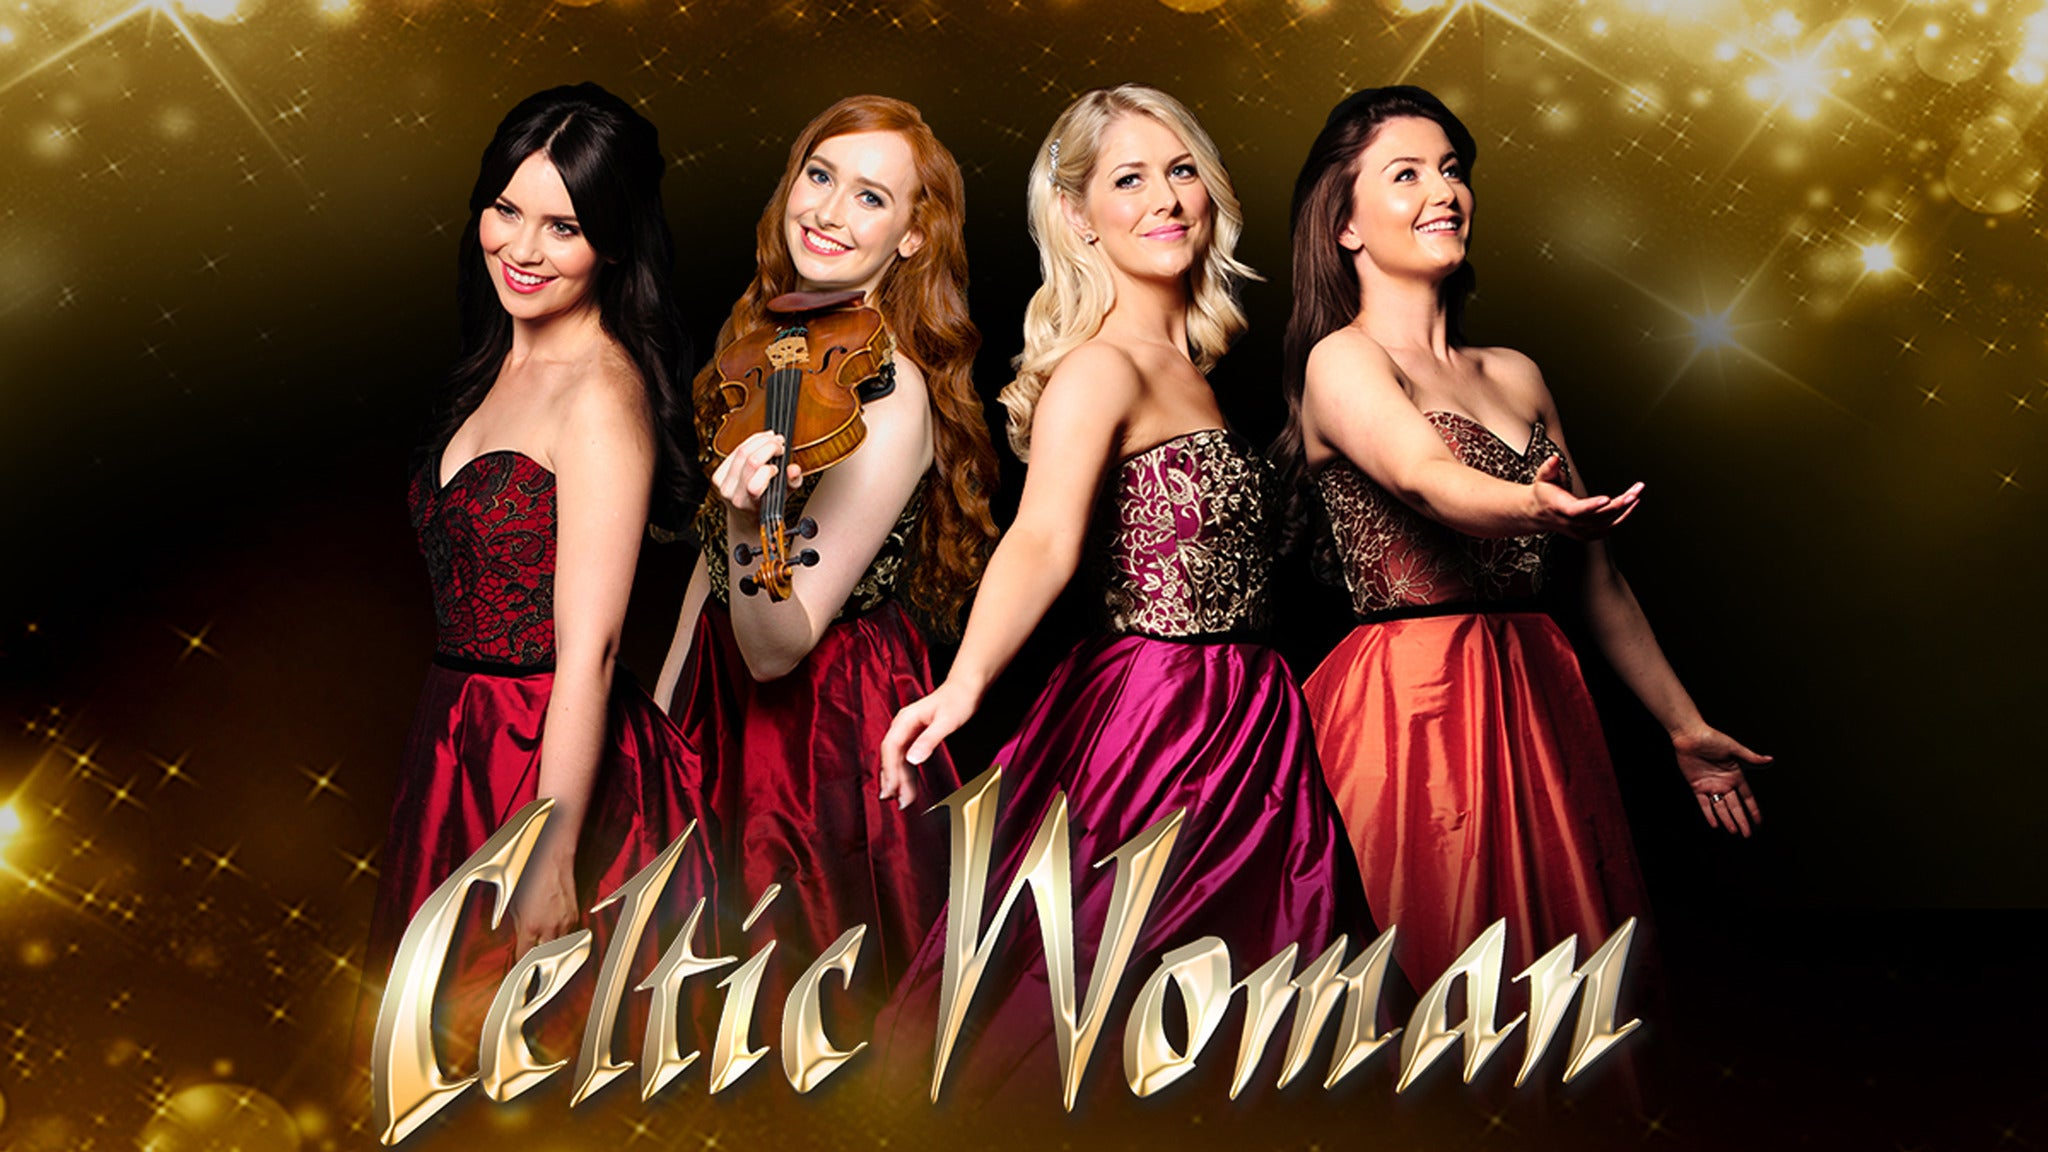 Celtic Woman at California Theatre of the Performing Arts - San Bernardino, CA 92401